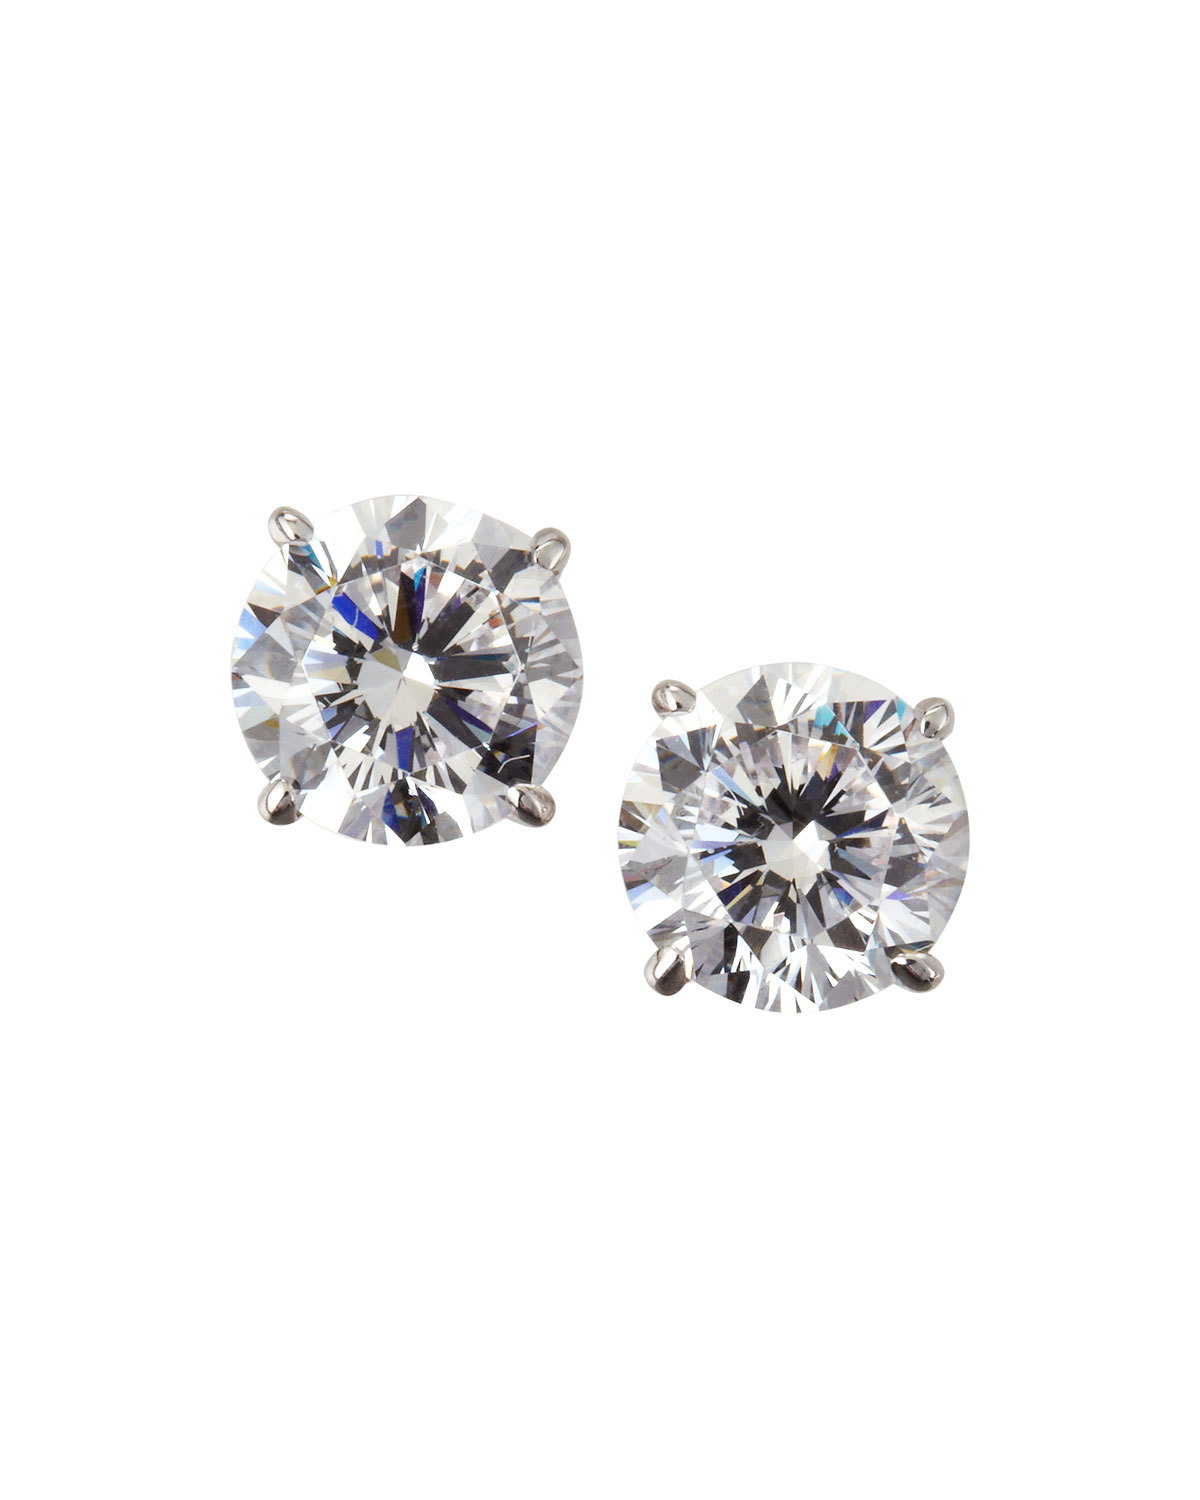 87950ab37 Fantasia by DeSerio 14k White Gold Cubic Zirconia Stud Earrings, 2.0 TCW